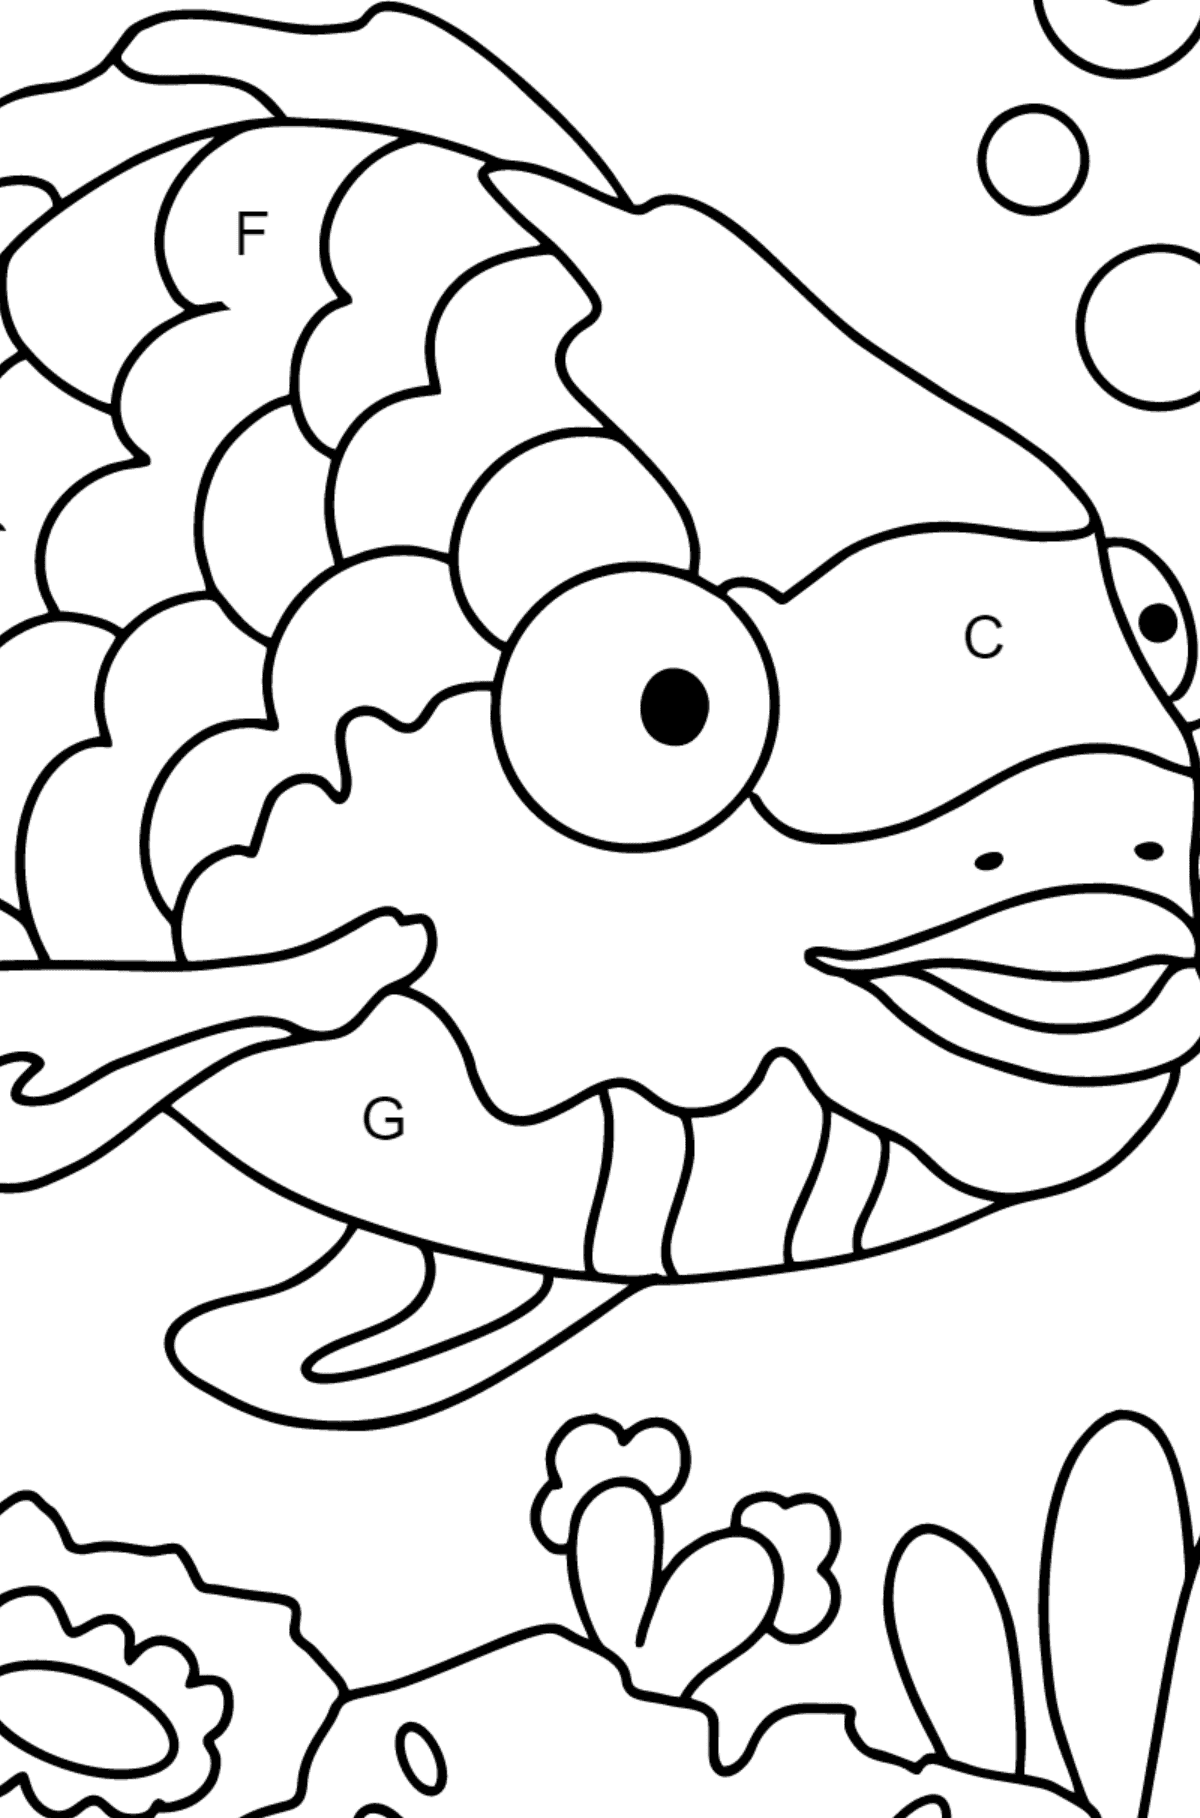 Coloring Page - A Fish with Multicolored Scales - Coloring by Letters for Kids